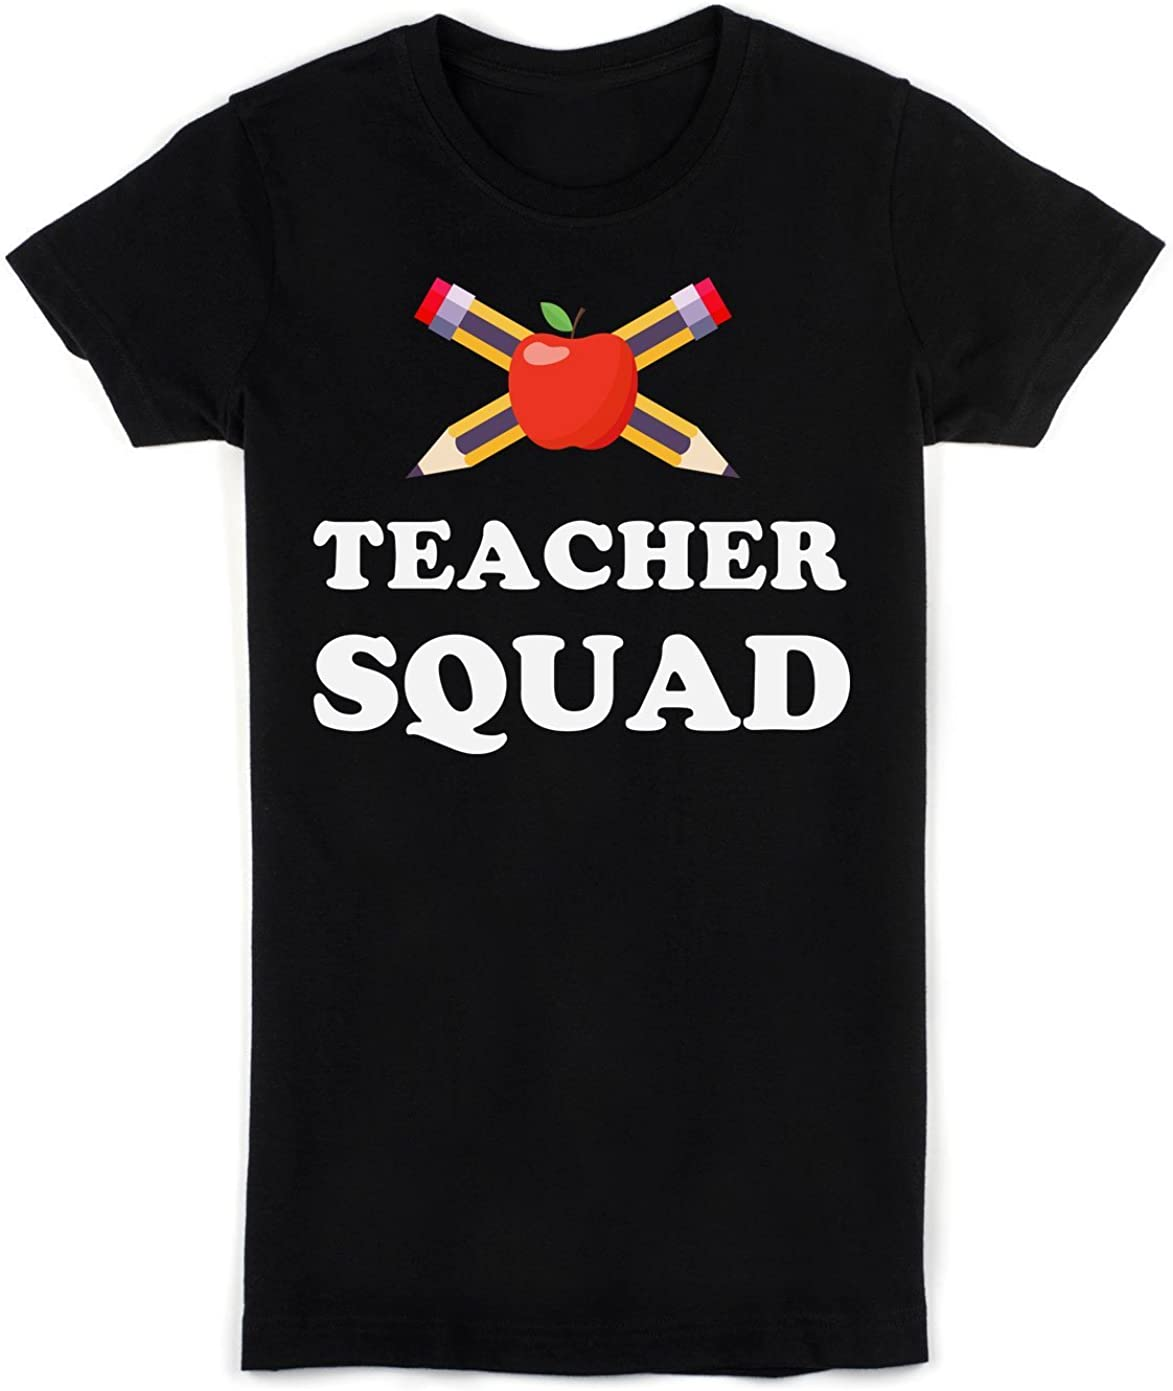 Teacher Squad Delicious Red Apple with Couple of Pencils Women's T-Shirt